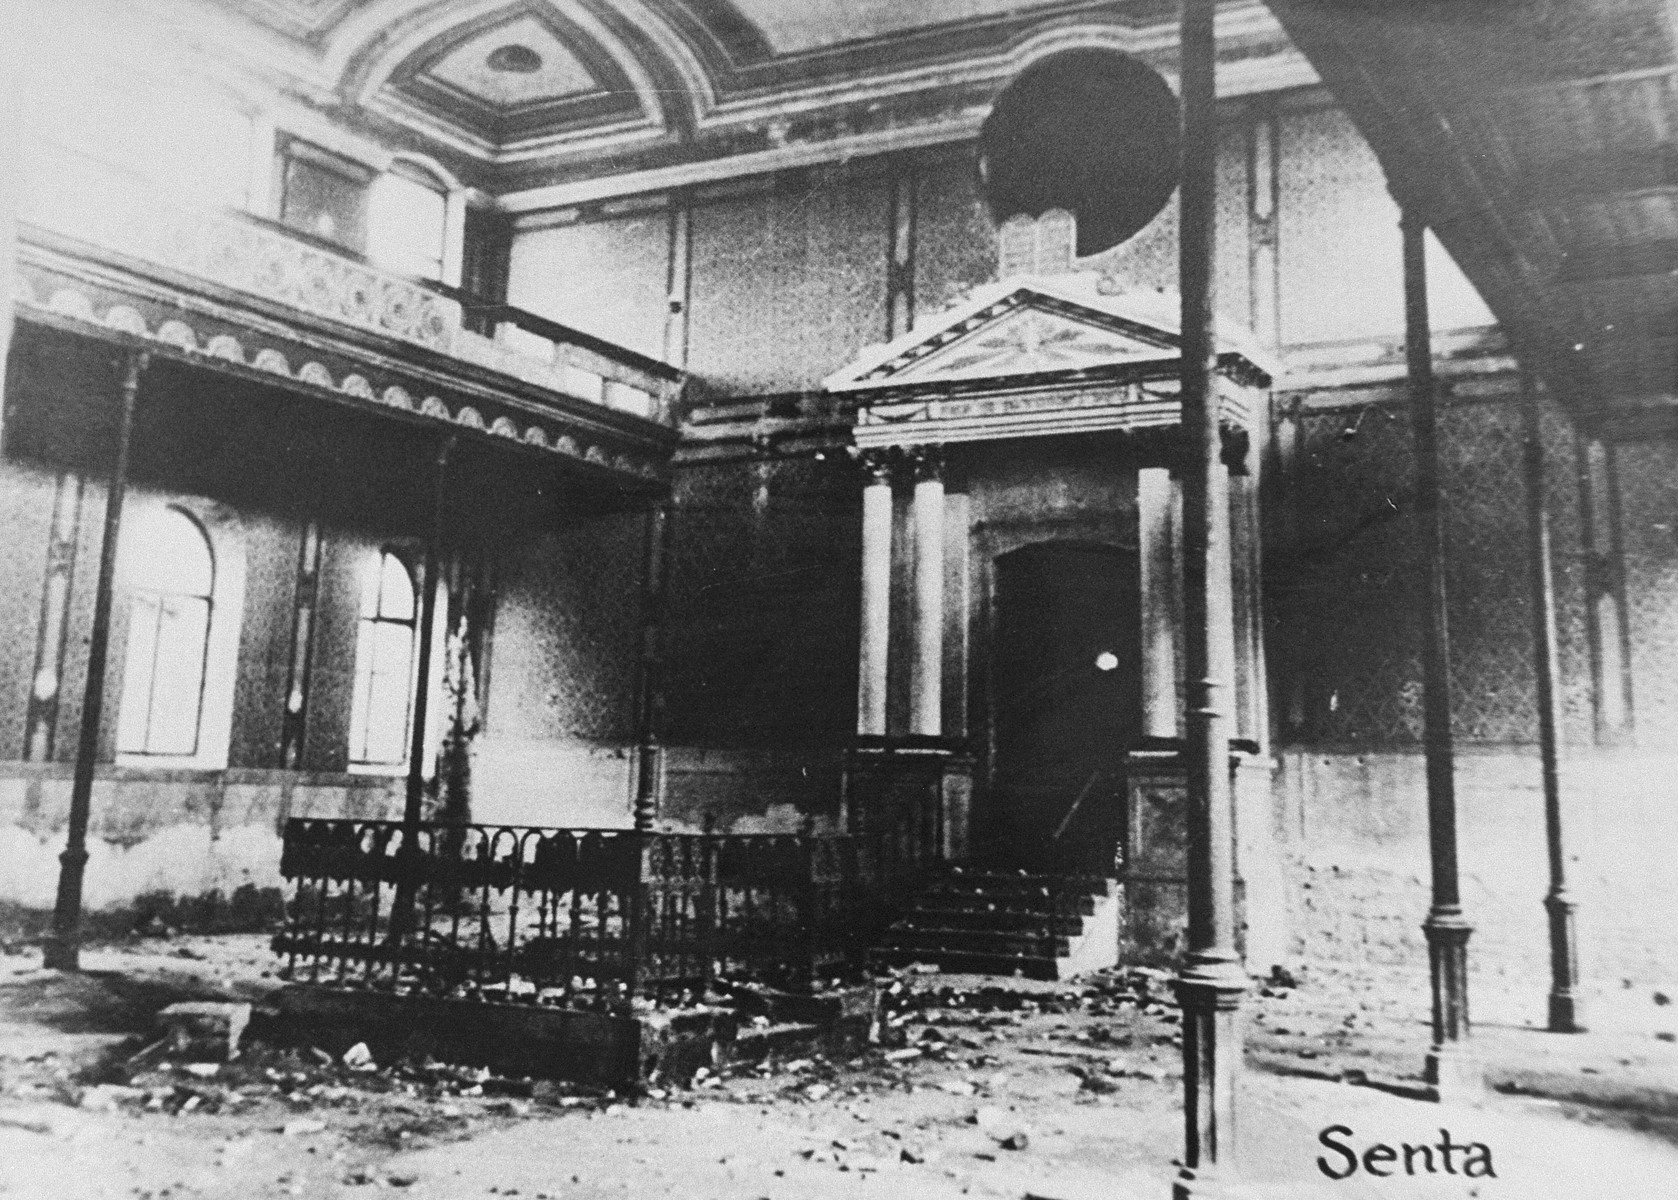 The destroyed interior of the Senta synagogue.